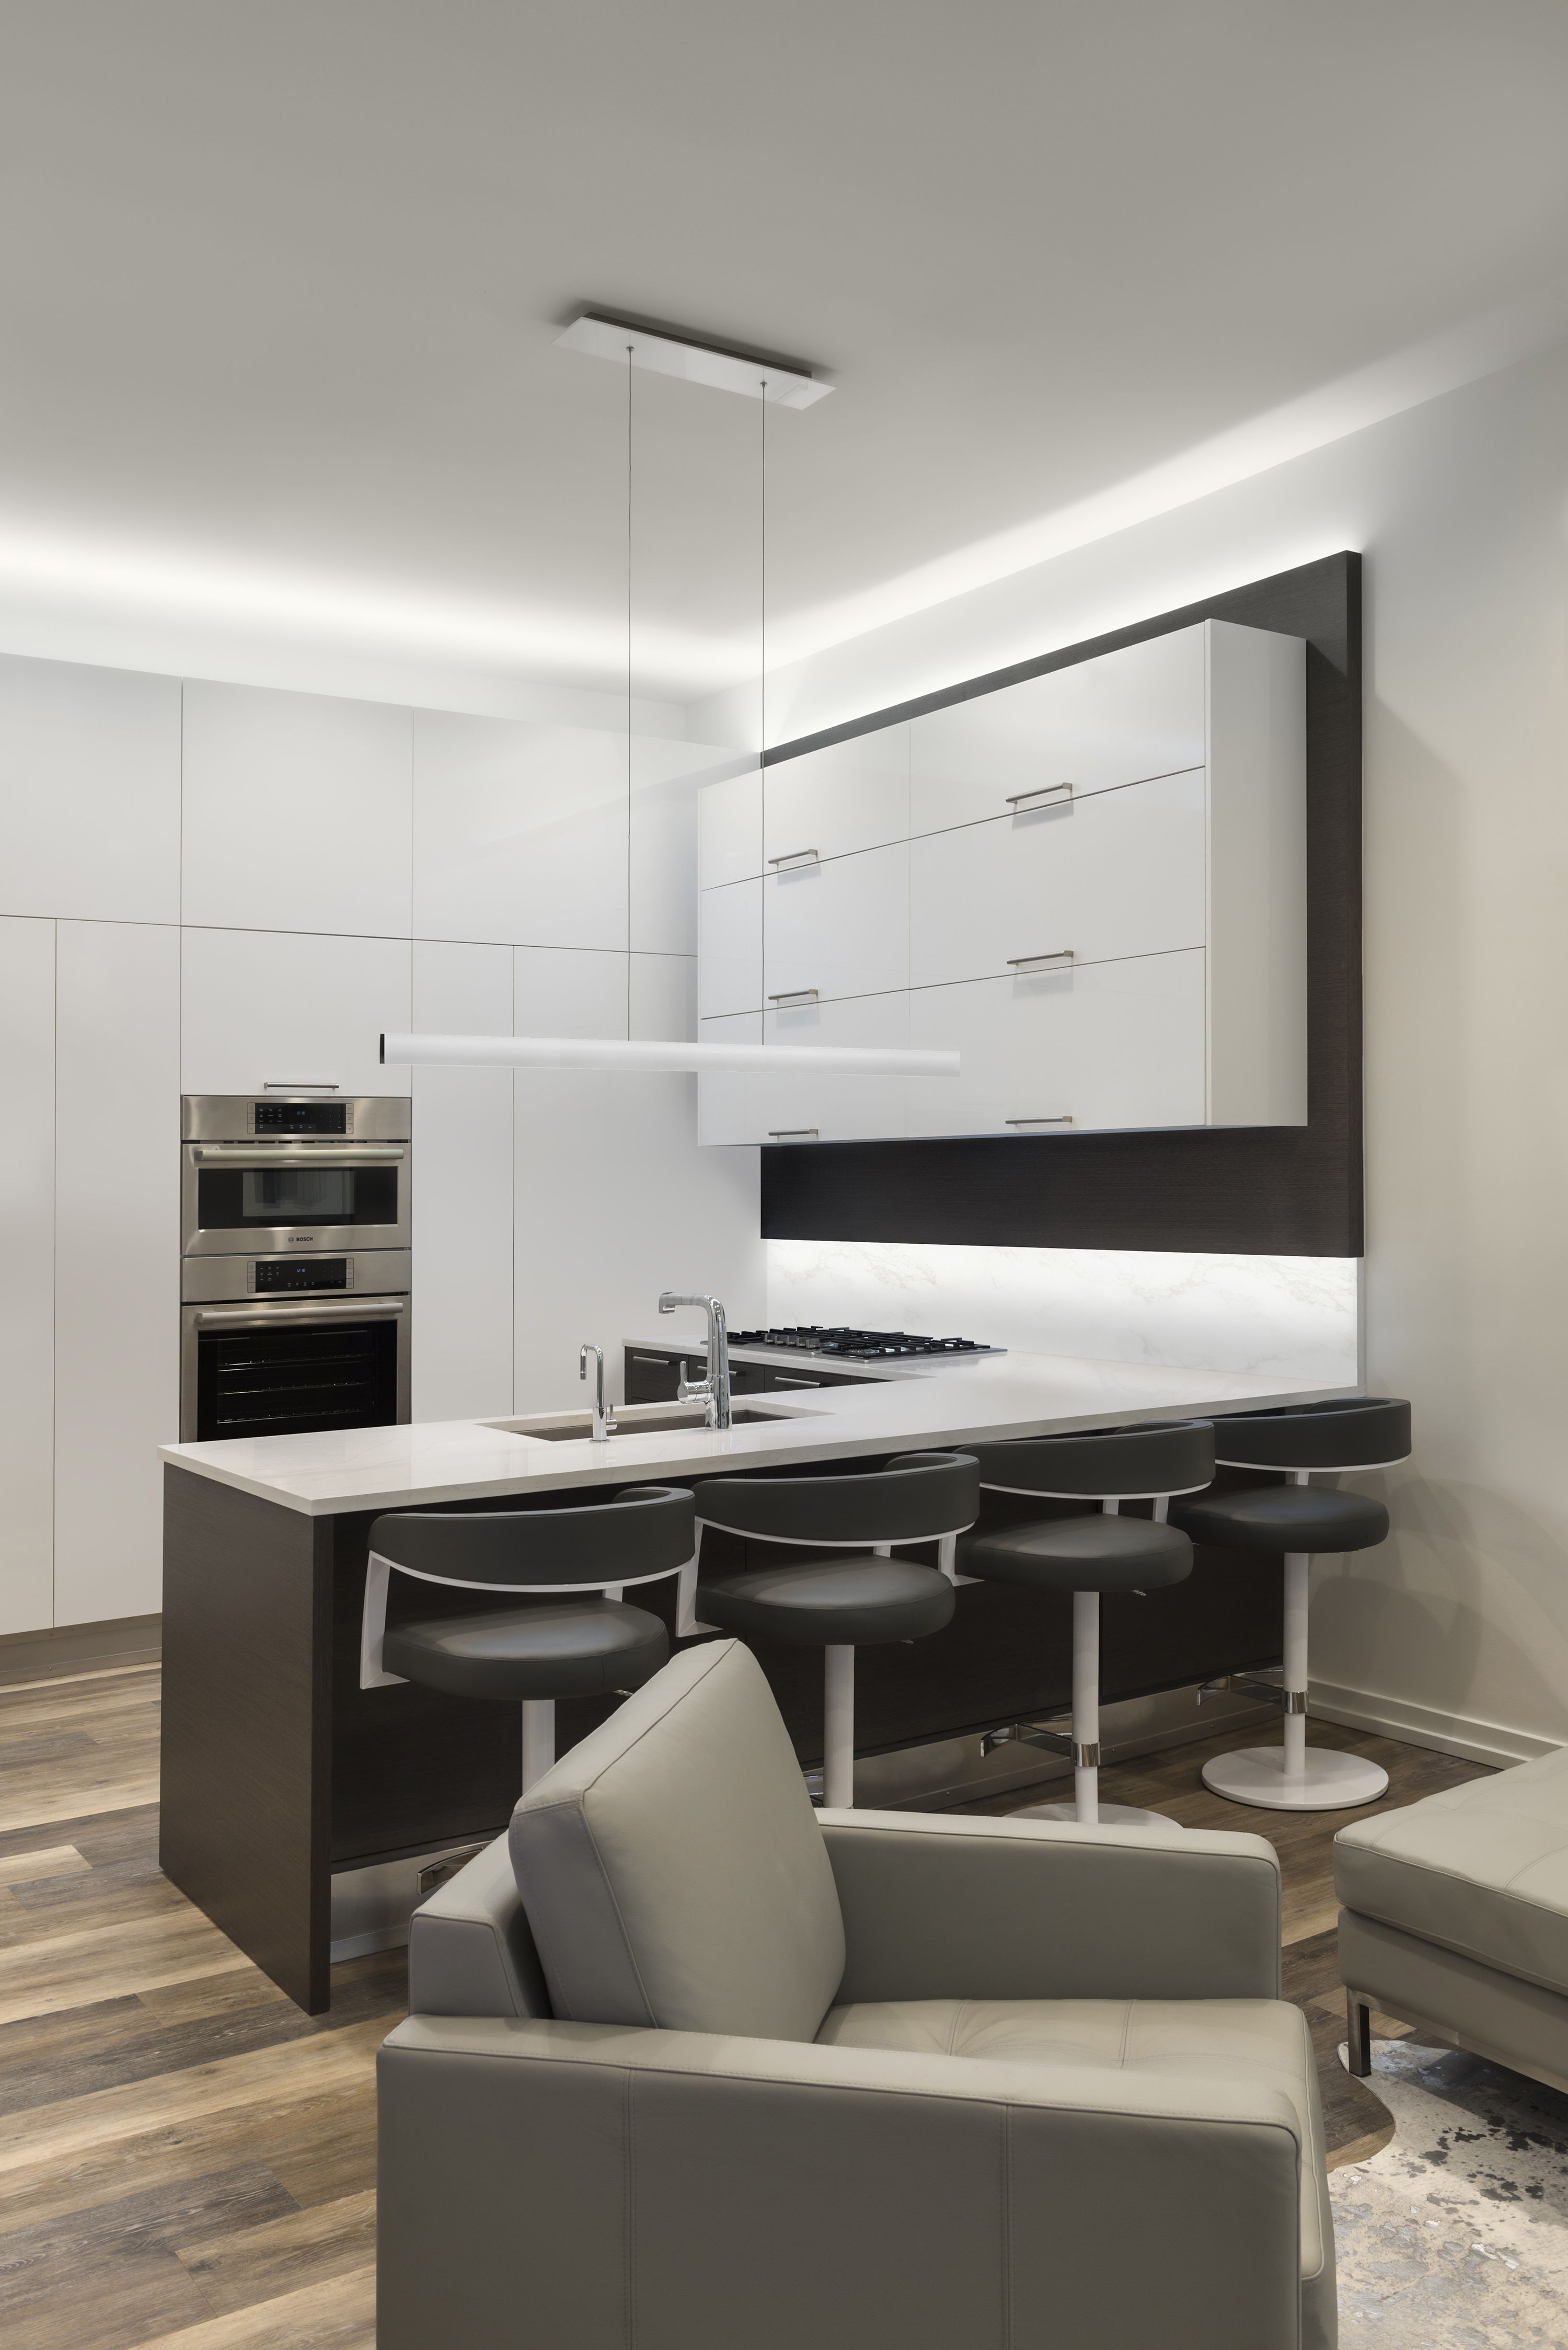 Adding to the clean, modern decor, this linear suspension projects ...